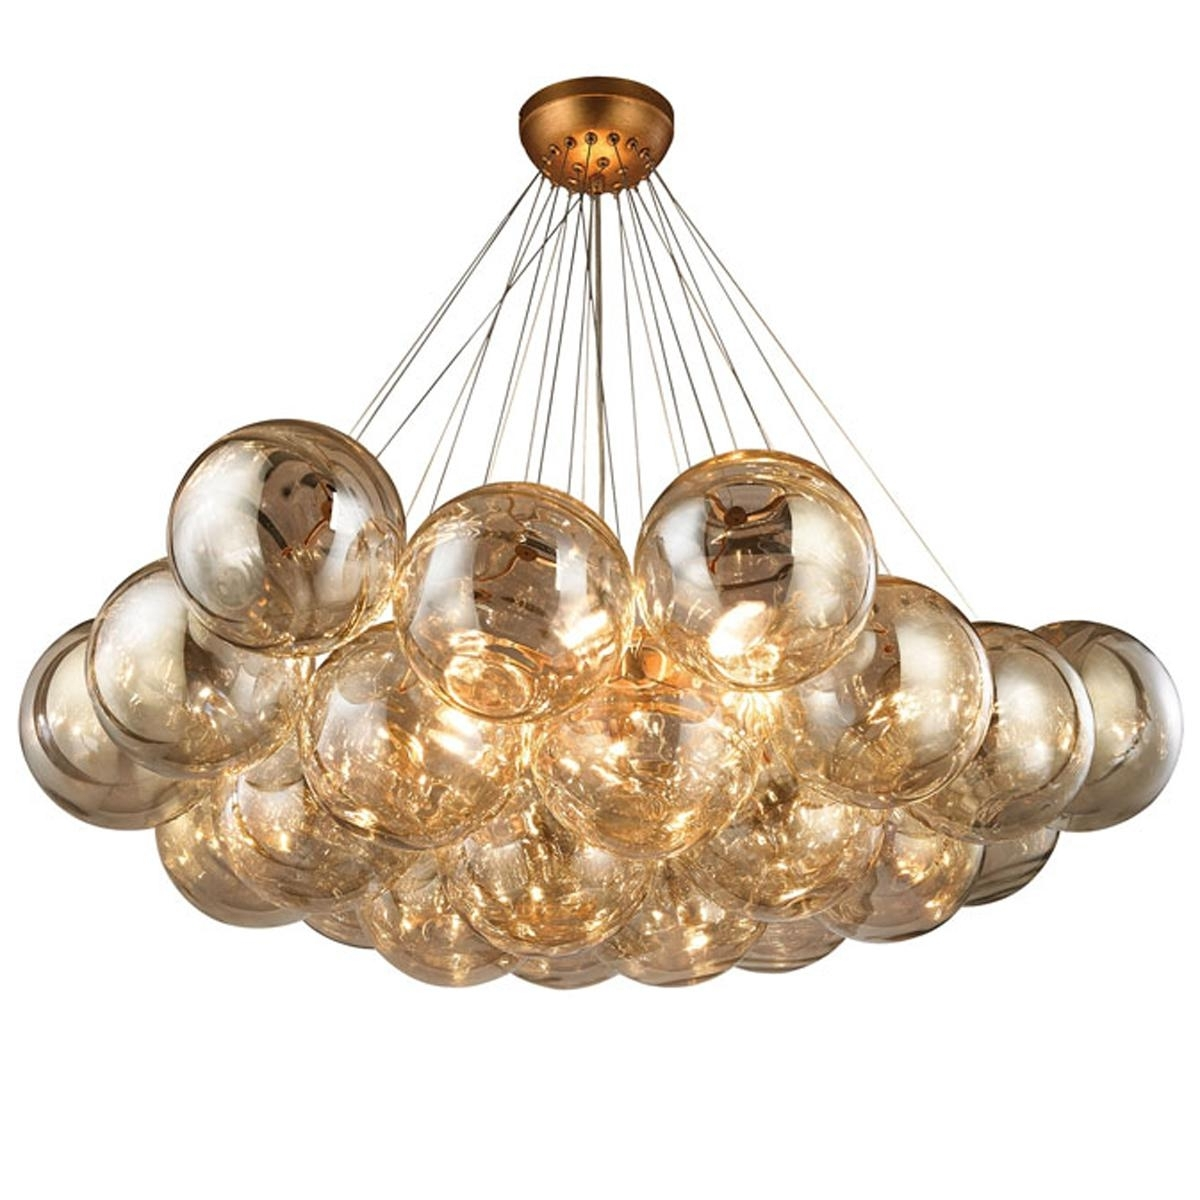 2019 Large Globe Chandelier For Large Foyer Multi Globe Chandelier – Trgn #4144F7Bf (View 1 of 20)